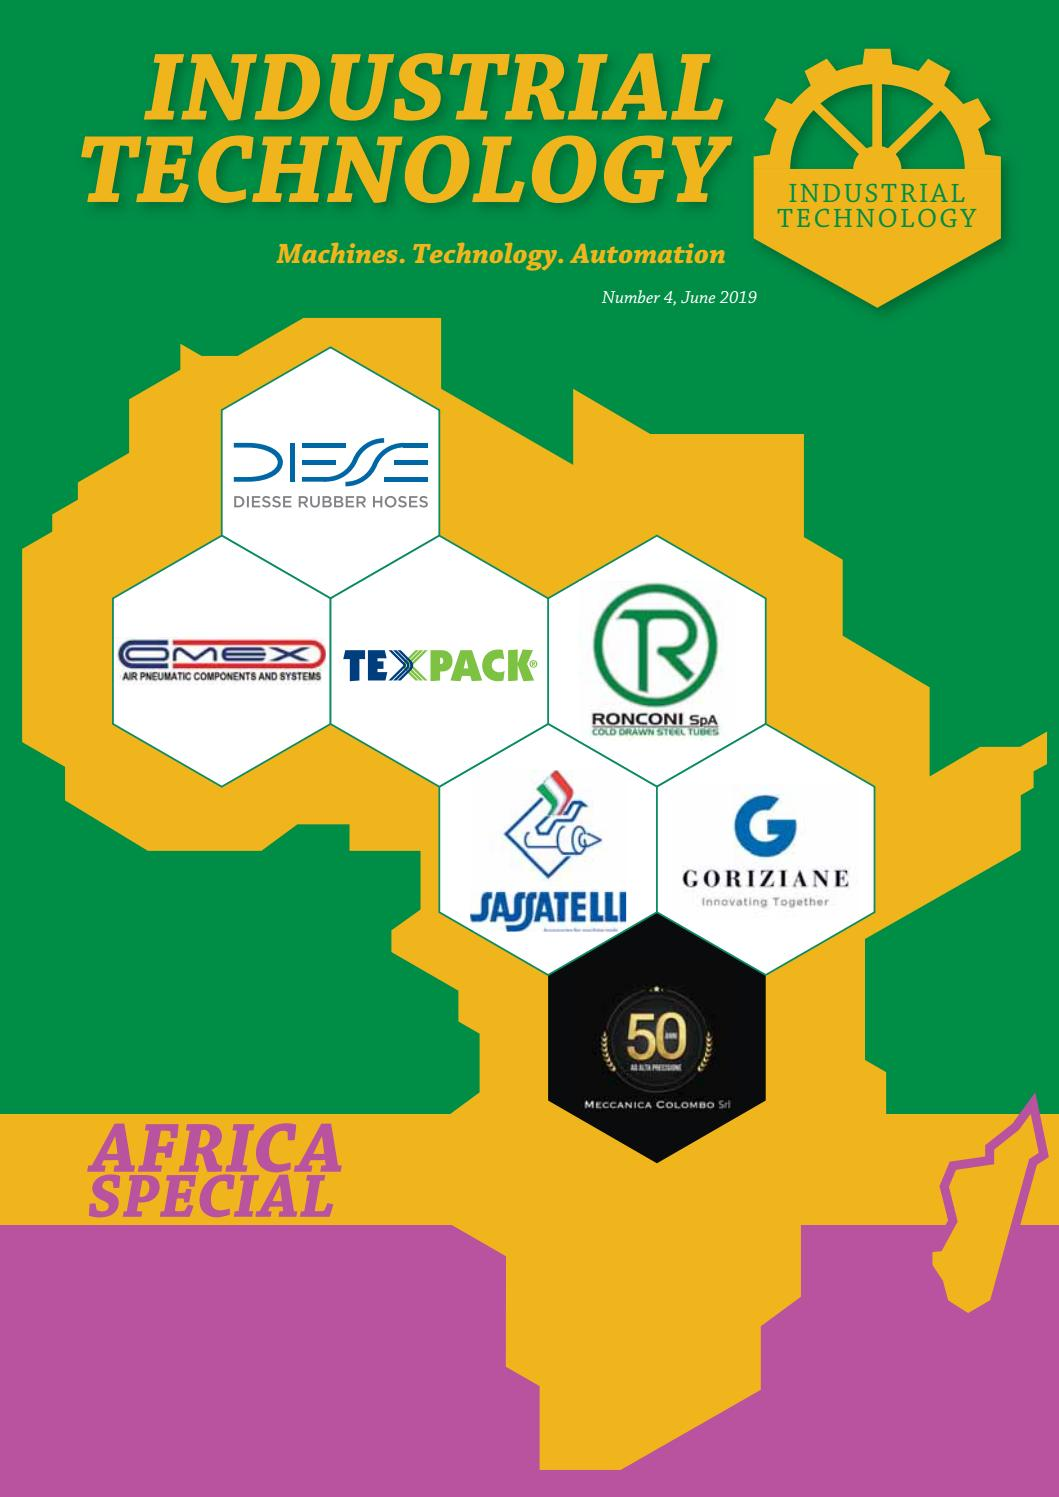 Industrial Technology AFRICA SPECIAL 2019